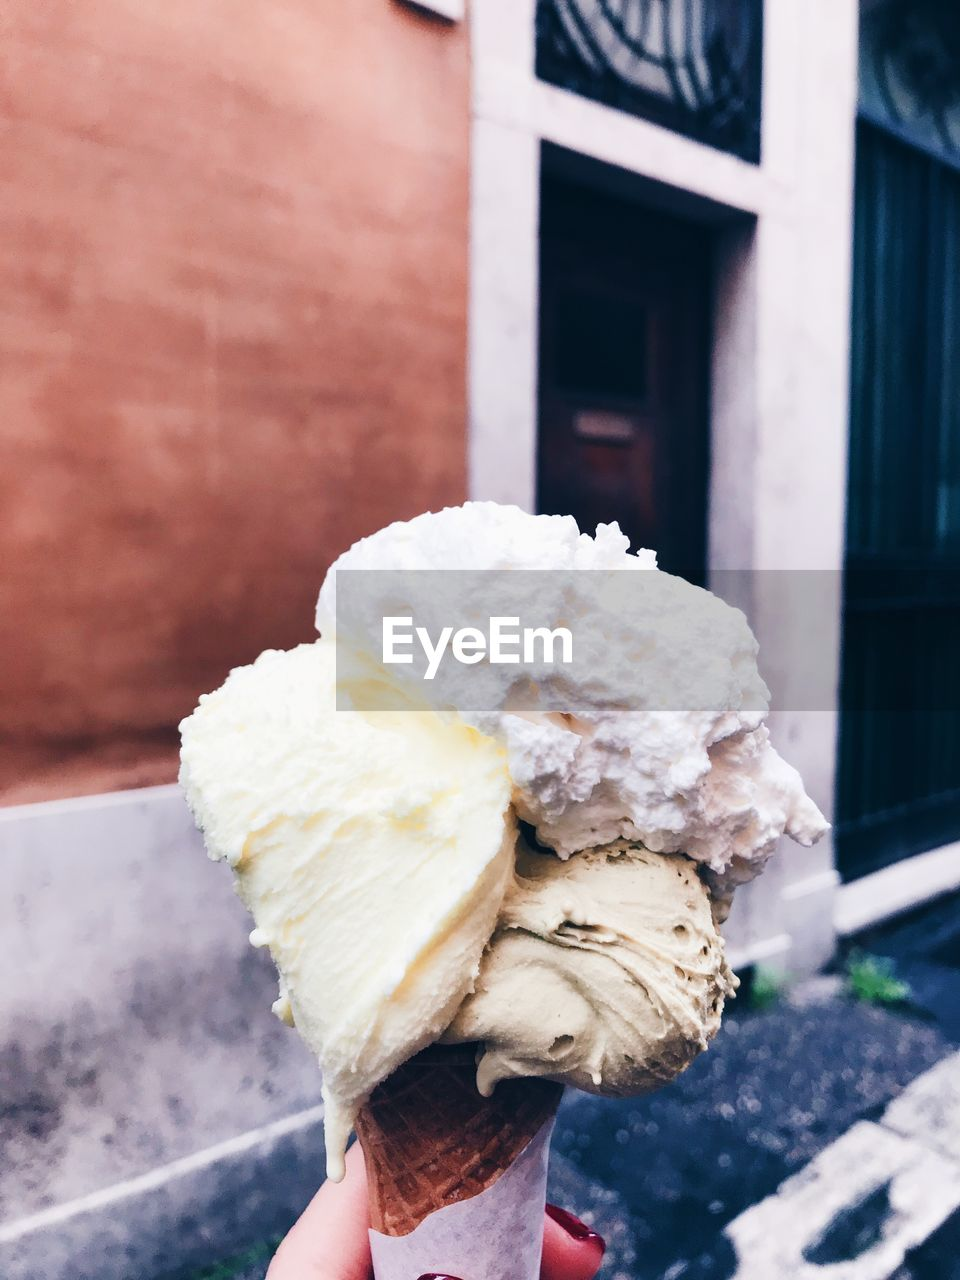 human body part, human hand, sweet food, holding, one person, hand, frozen, body part, sweet, ice cream, frozen food, real people, ice cream cone, food, unrecognizable person, unhealthy eating, food and drink, personal perspective, indulgence, cone, temptation, finger, outdoors, human limb